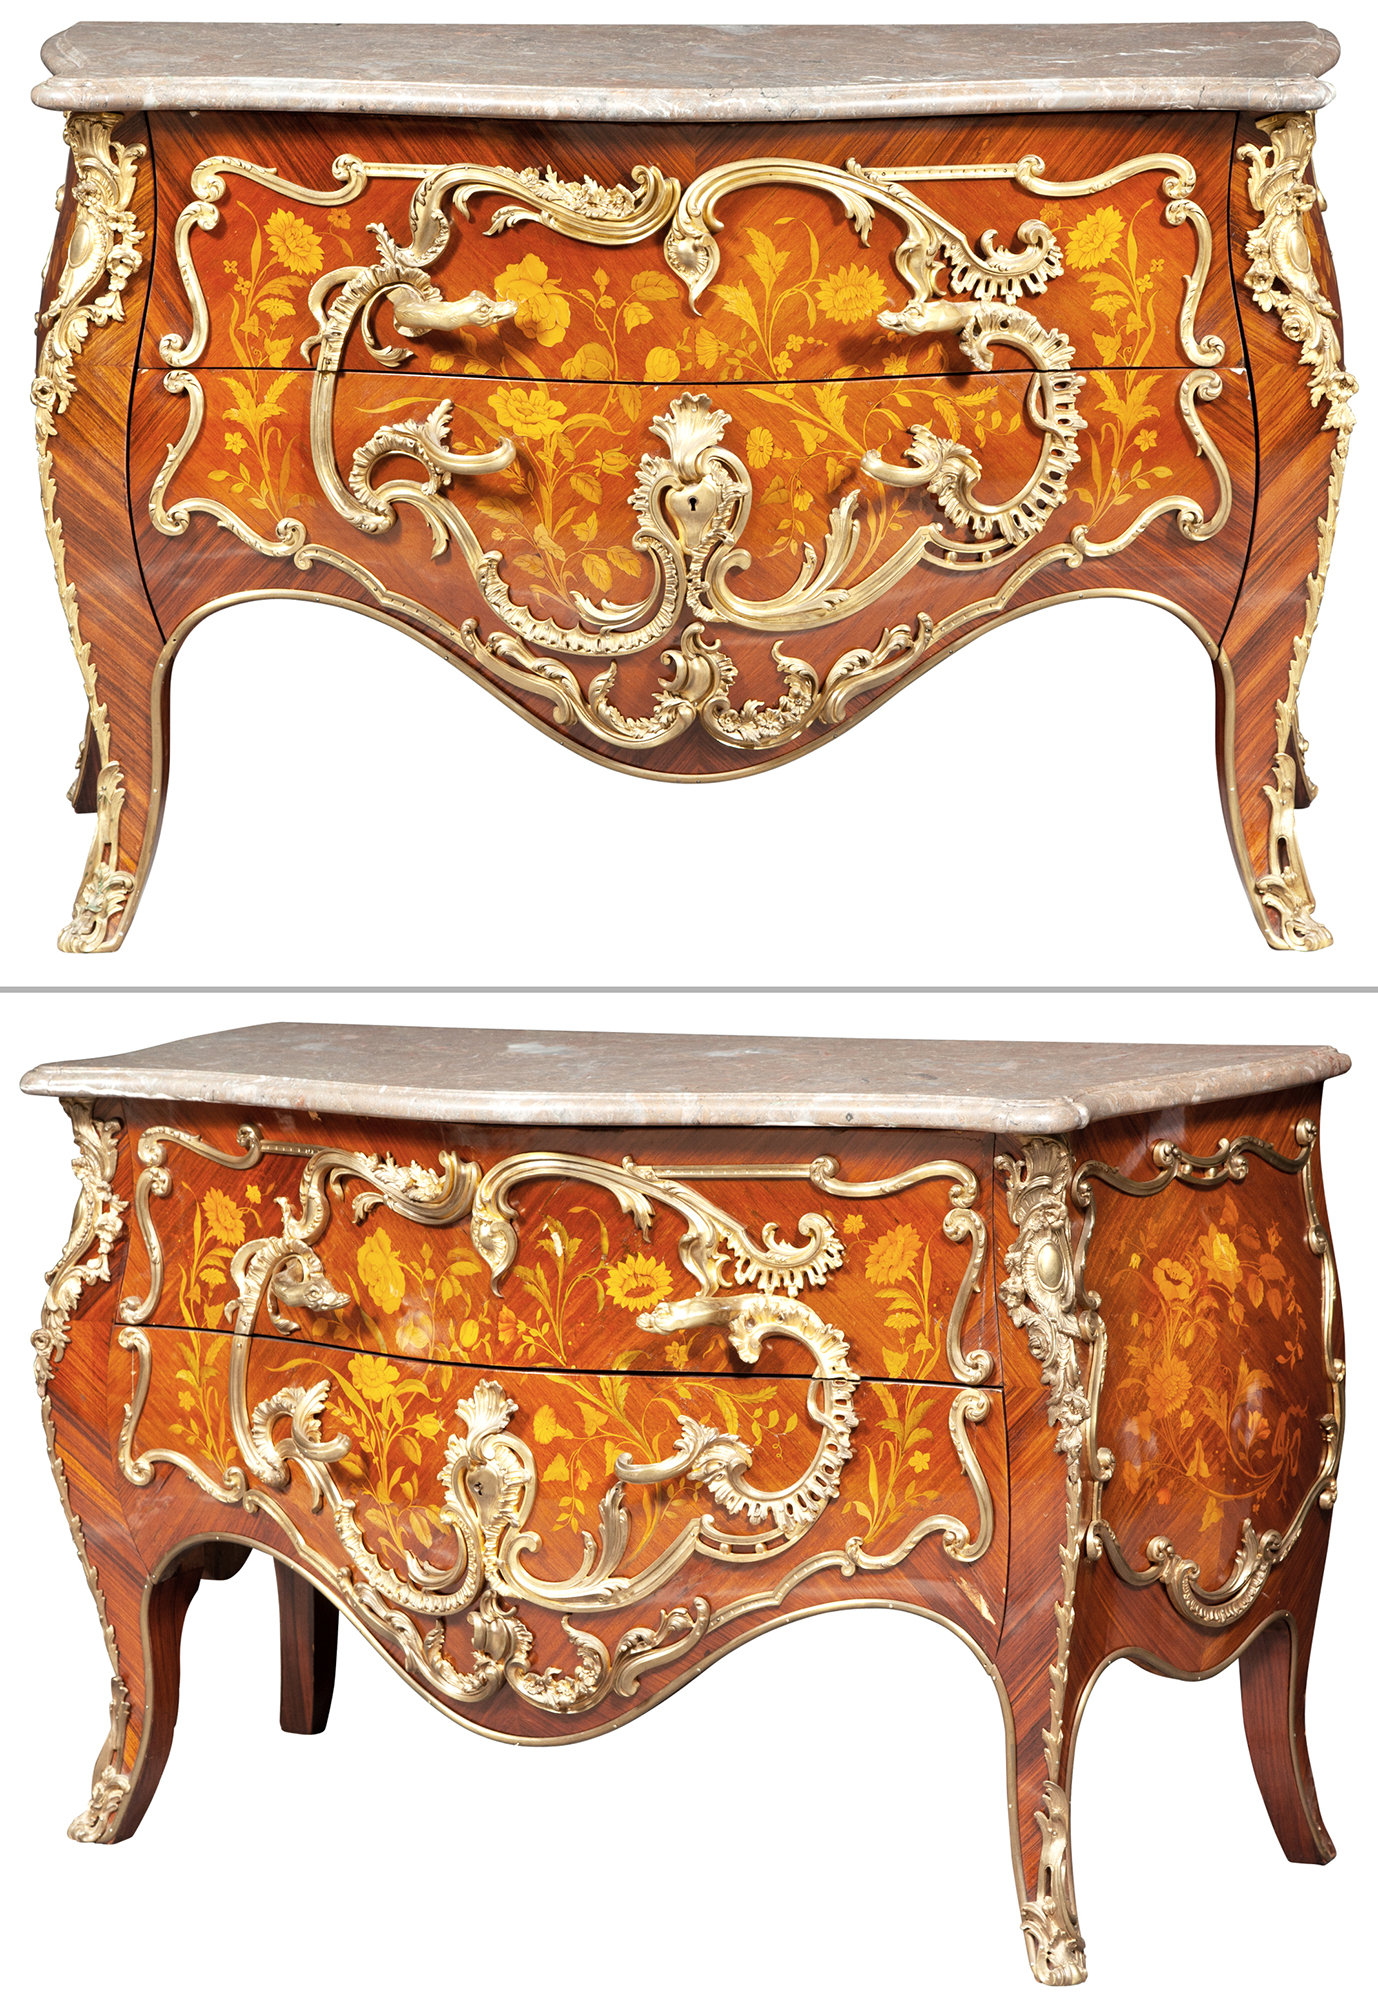 Lot image - Pair of French Gilt-Bronze-Mounted Kingwood Marquetry Commodes